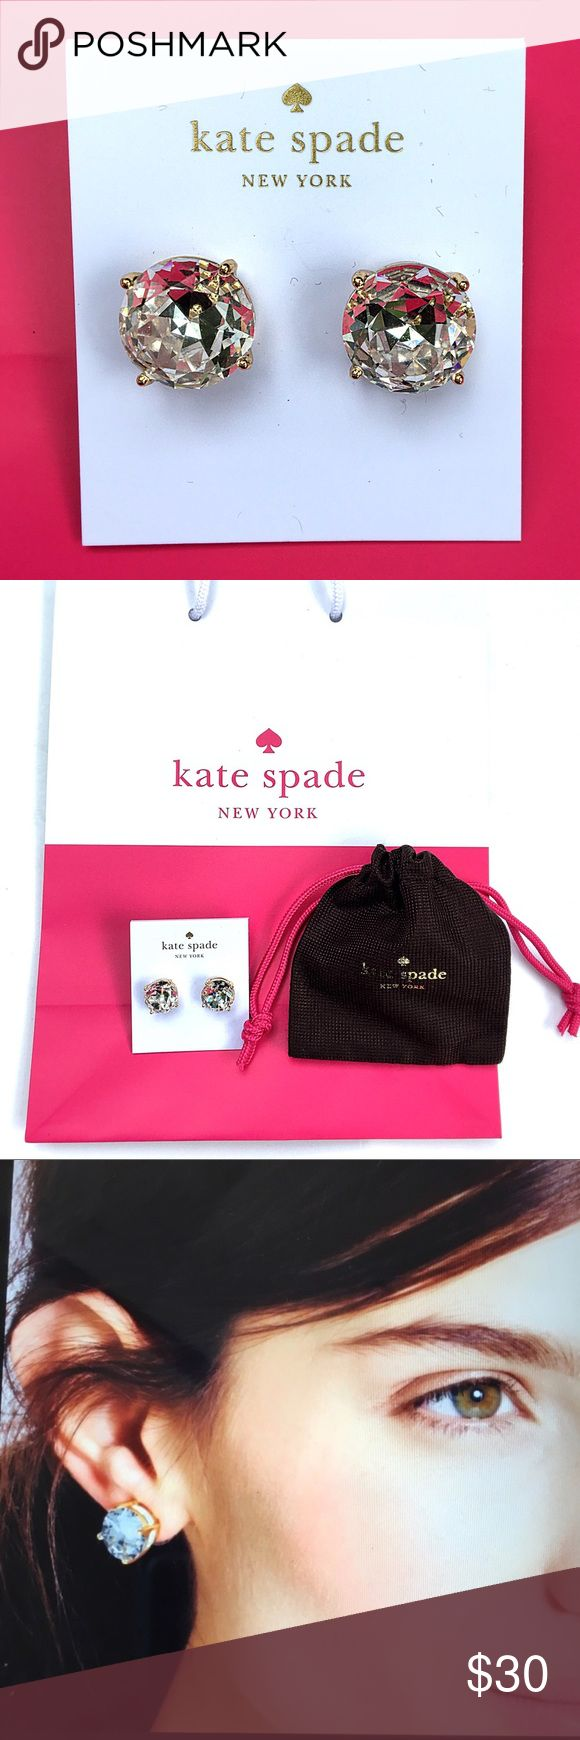 """NWT KATE SPADE large gumdrop stud earrings Back in stock!!!! NWT Kate Spade statement sparkling clear large gumdrop earrings!!! Classic clear studs with gold tone four prong setting that catch the light with every movement! Price includes soft drawstring pouch and Kate ♠️ gift bag! Appox 1/4"""" square: post back kate spade Jewelry Earrings"""